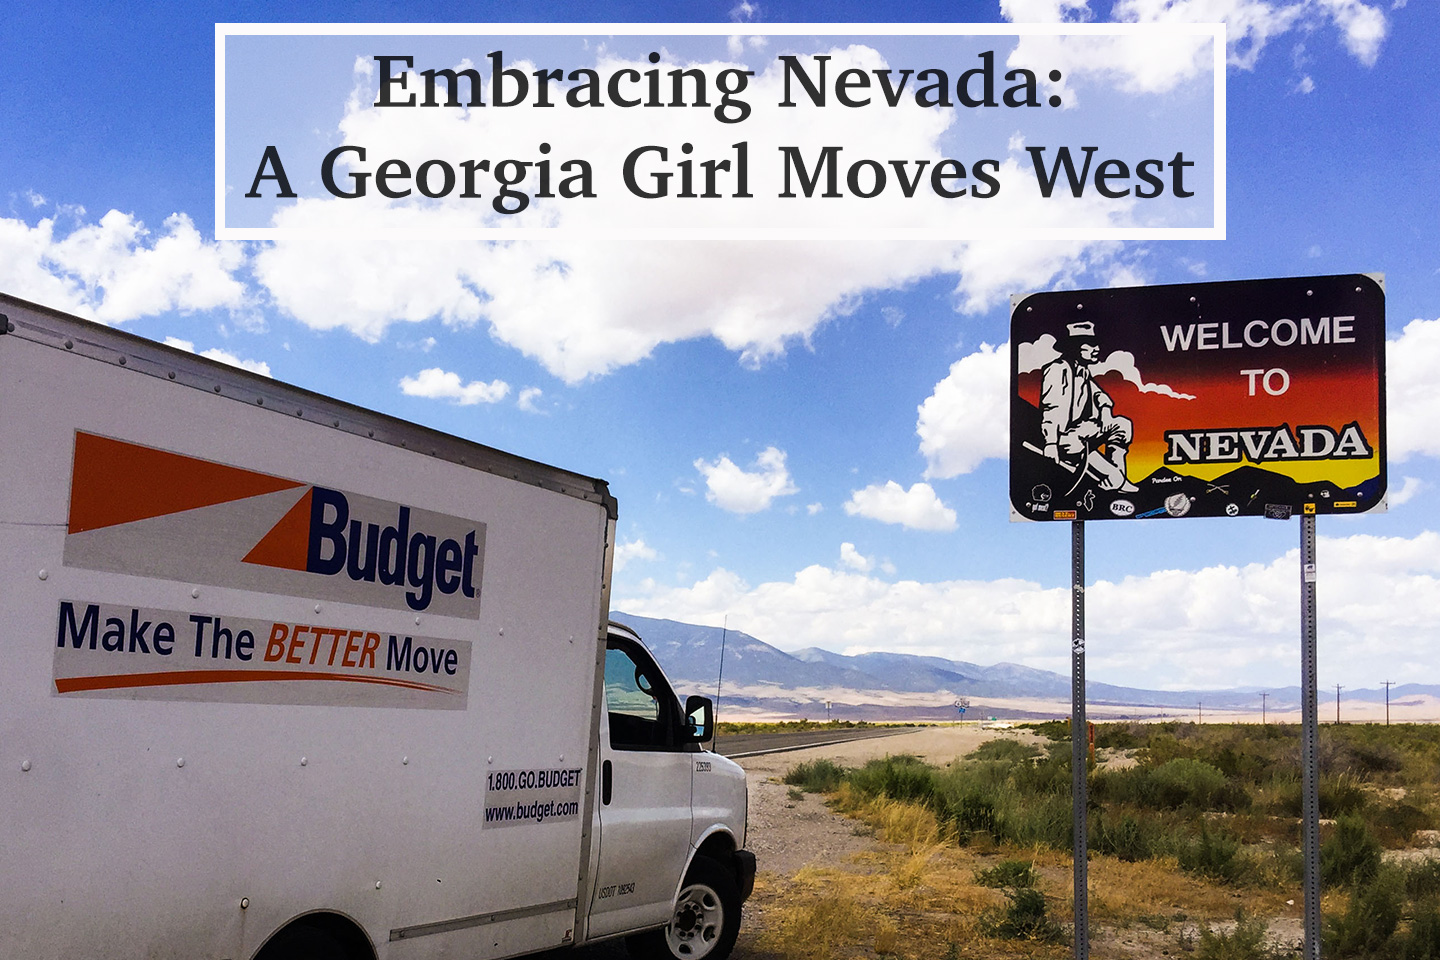 Embracing Nevada: A Georgia Girl Moves West